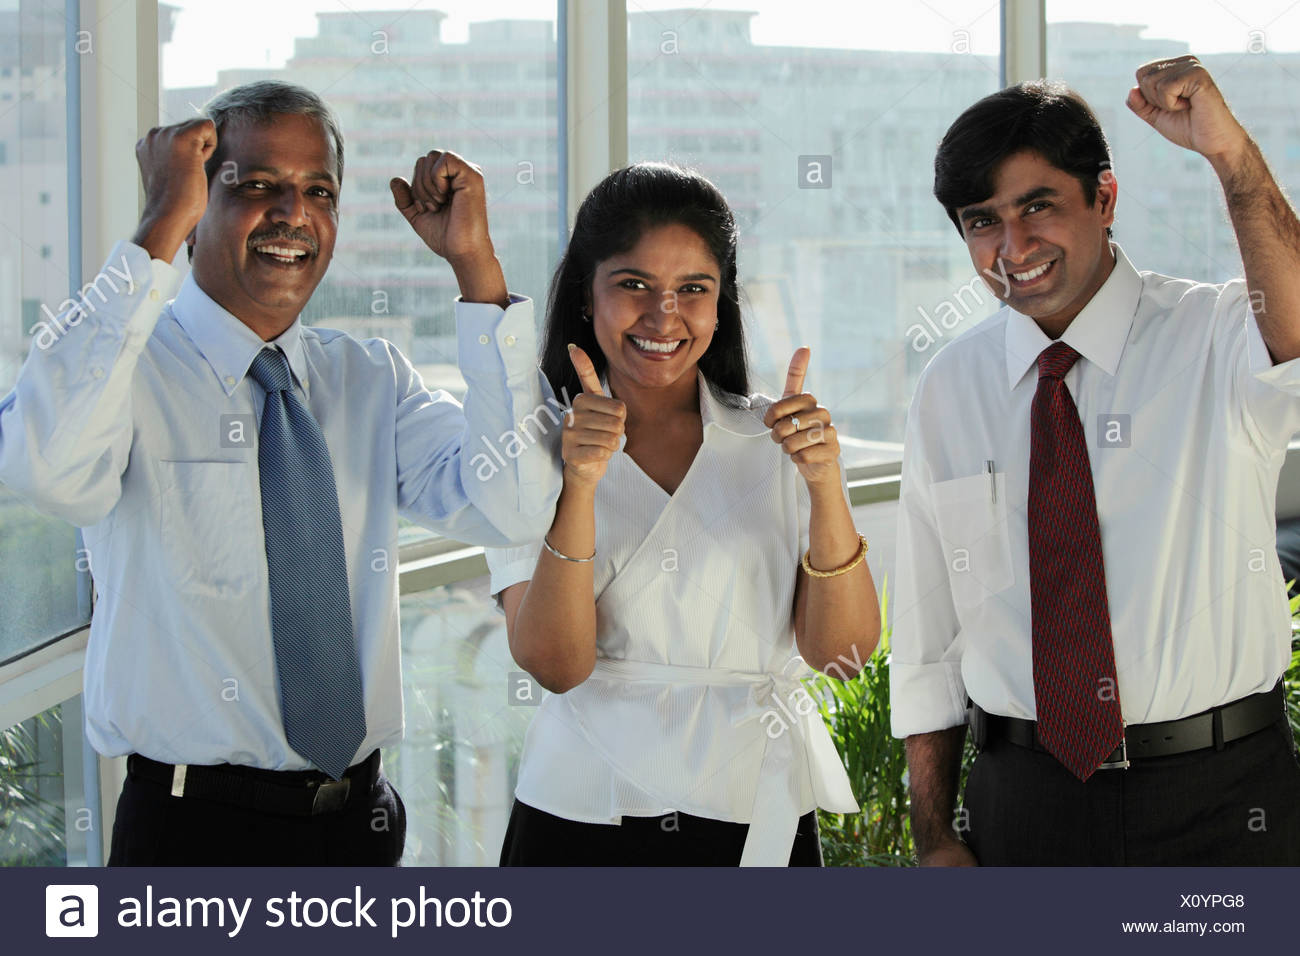 Three Indian people smiling making hand gestures - Stock Image